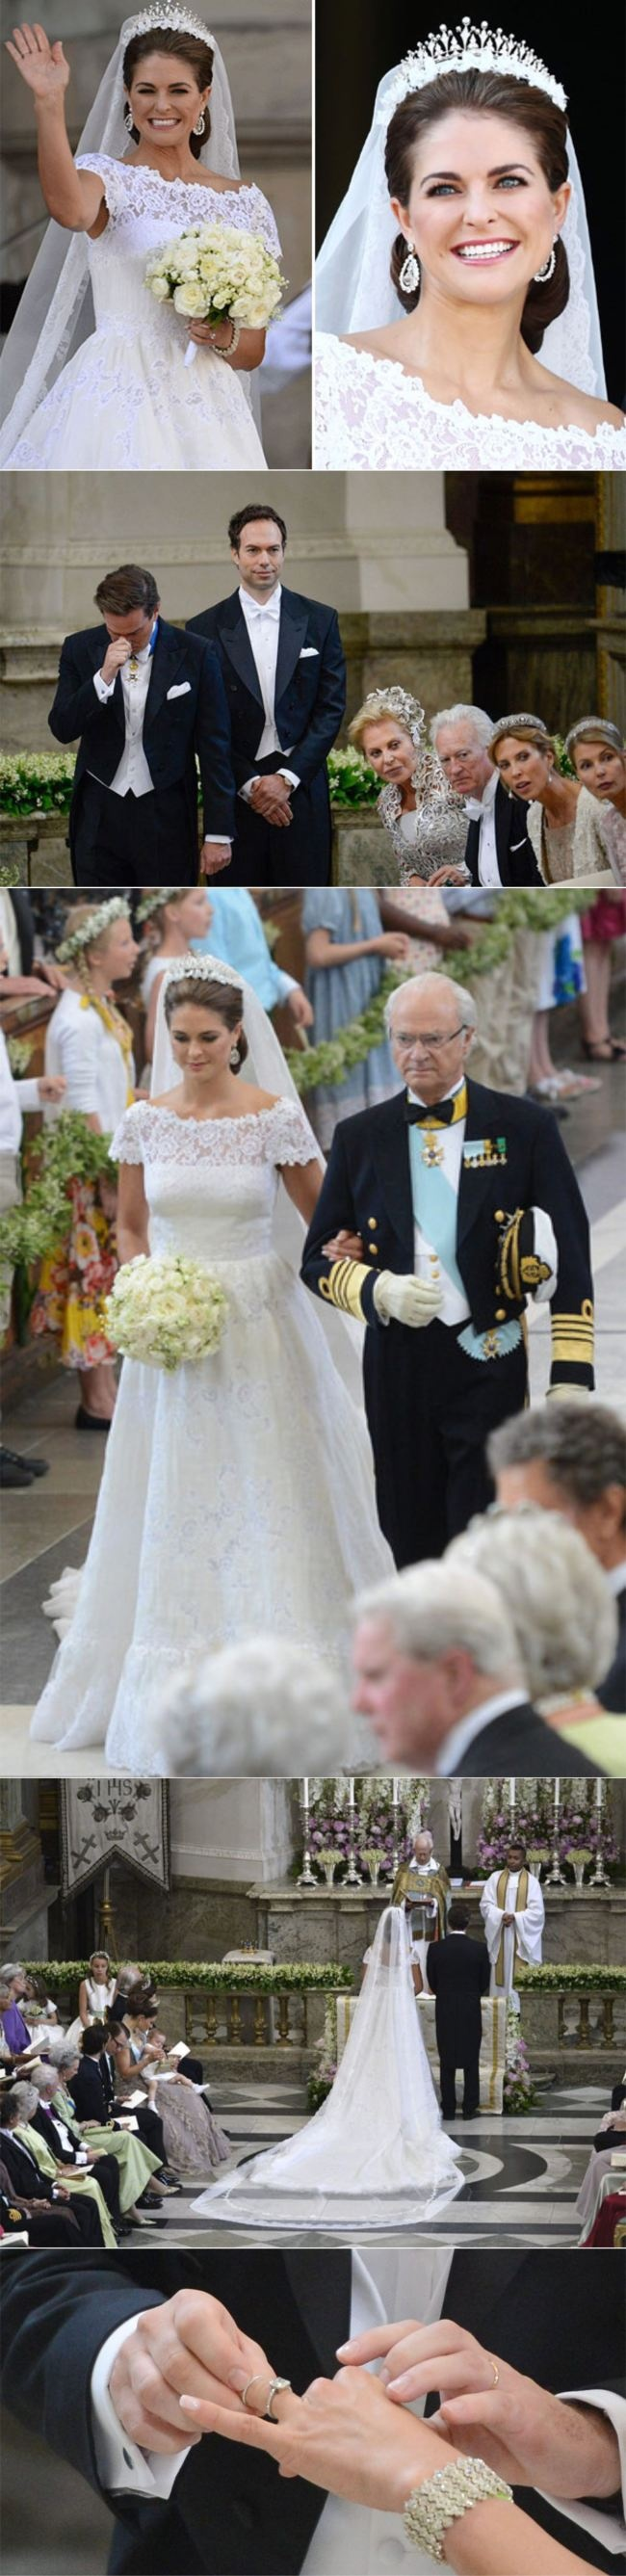 Princess Madeleine of Sweden's wedding to American businessman Chris O'Neil, Royal Palace chapel, Stockholm - 8 June 2013 | Dress: Valentino Haute Couture